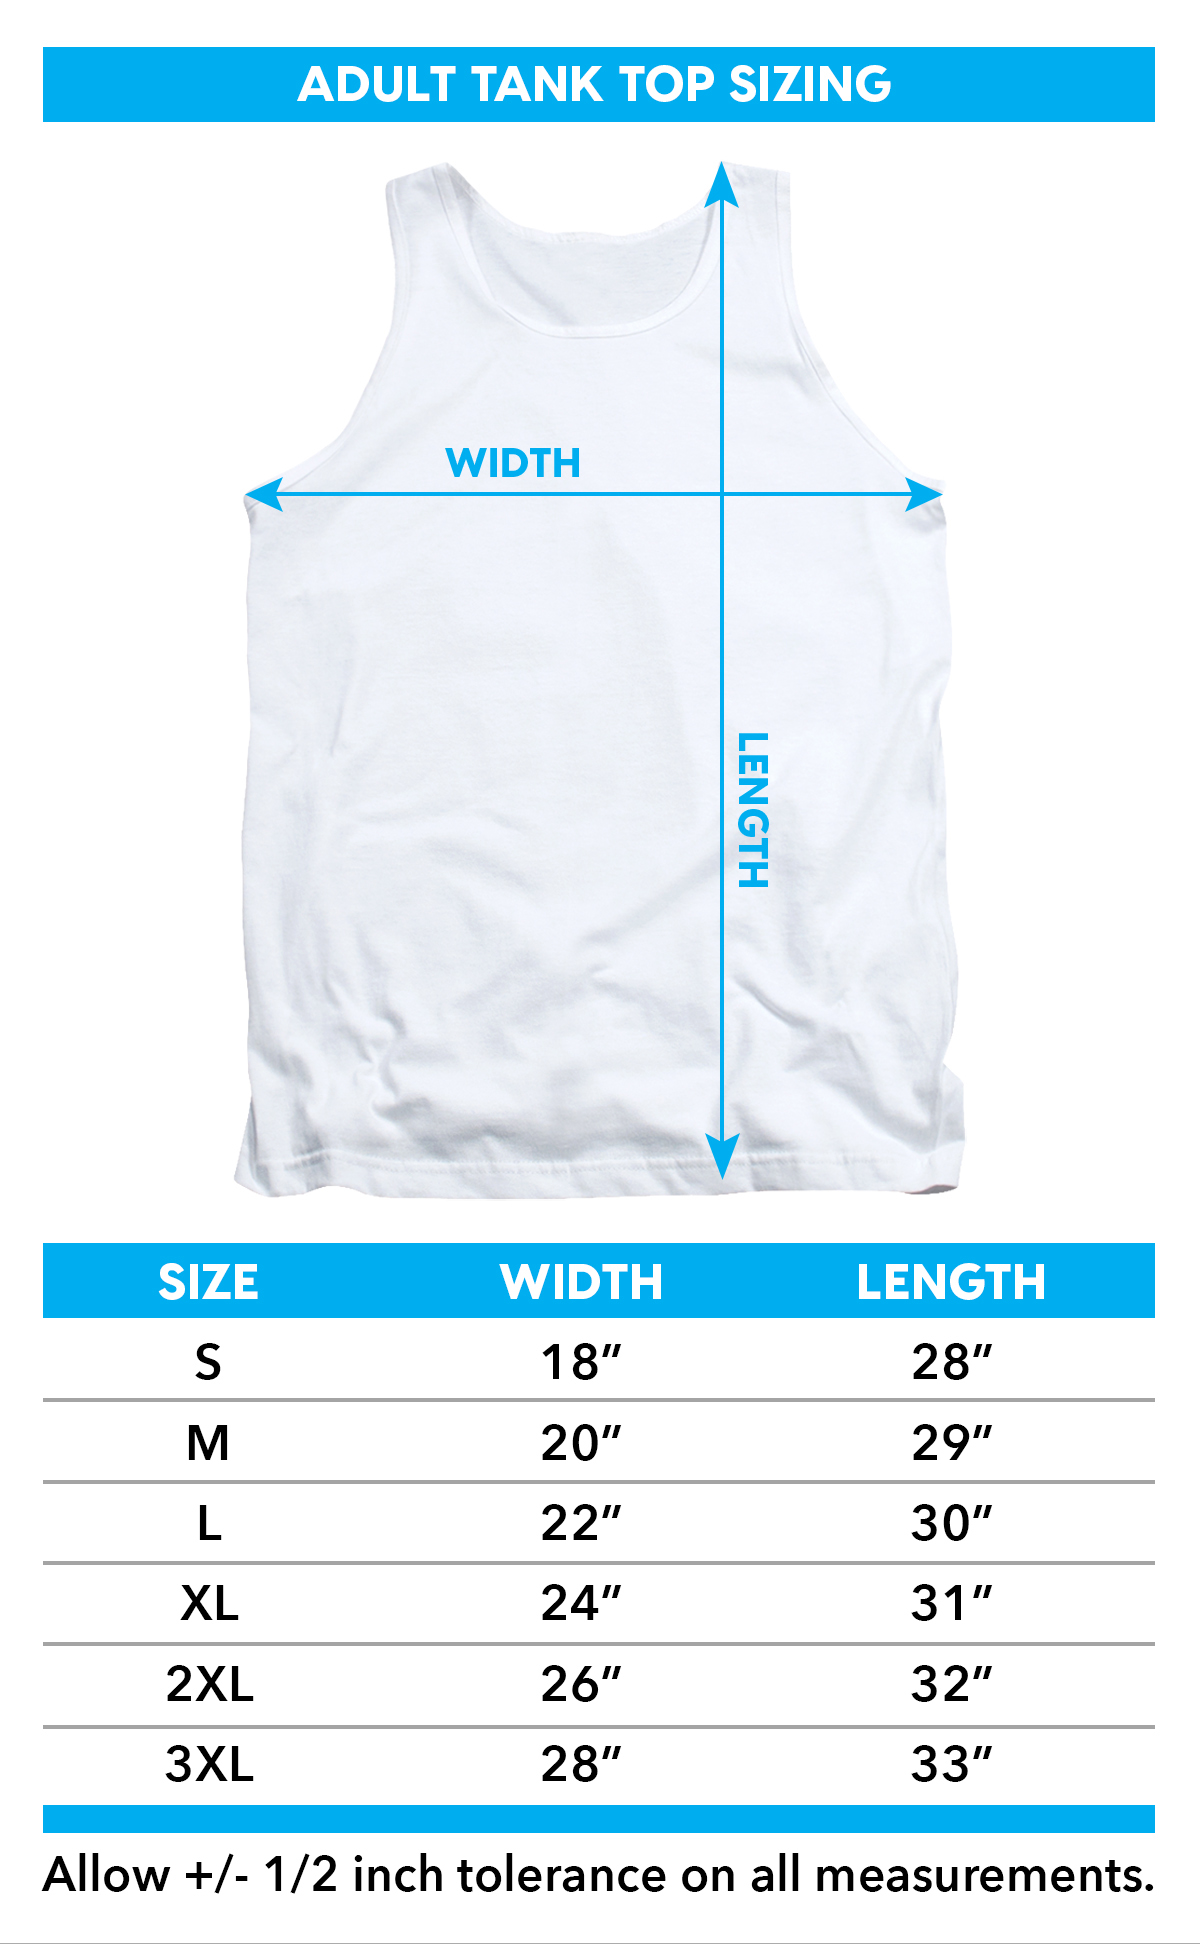 Sizing chart for ZZ Top Tank Top - Fandango! TRV-ZTOP101-TK